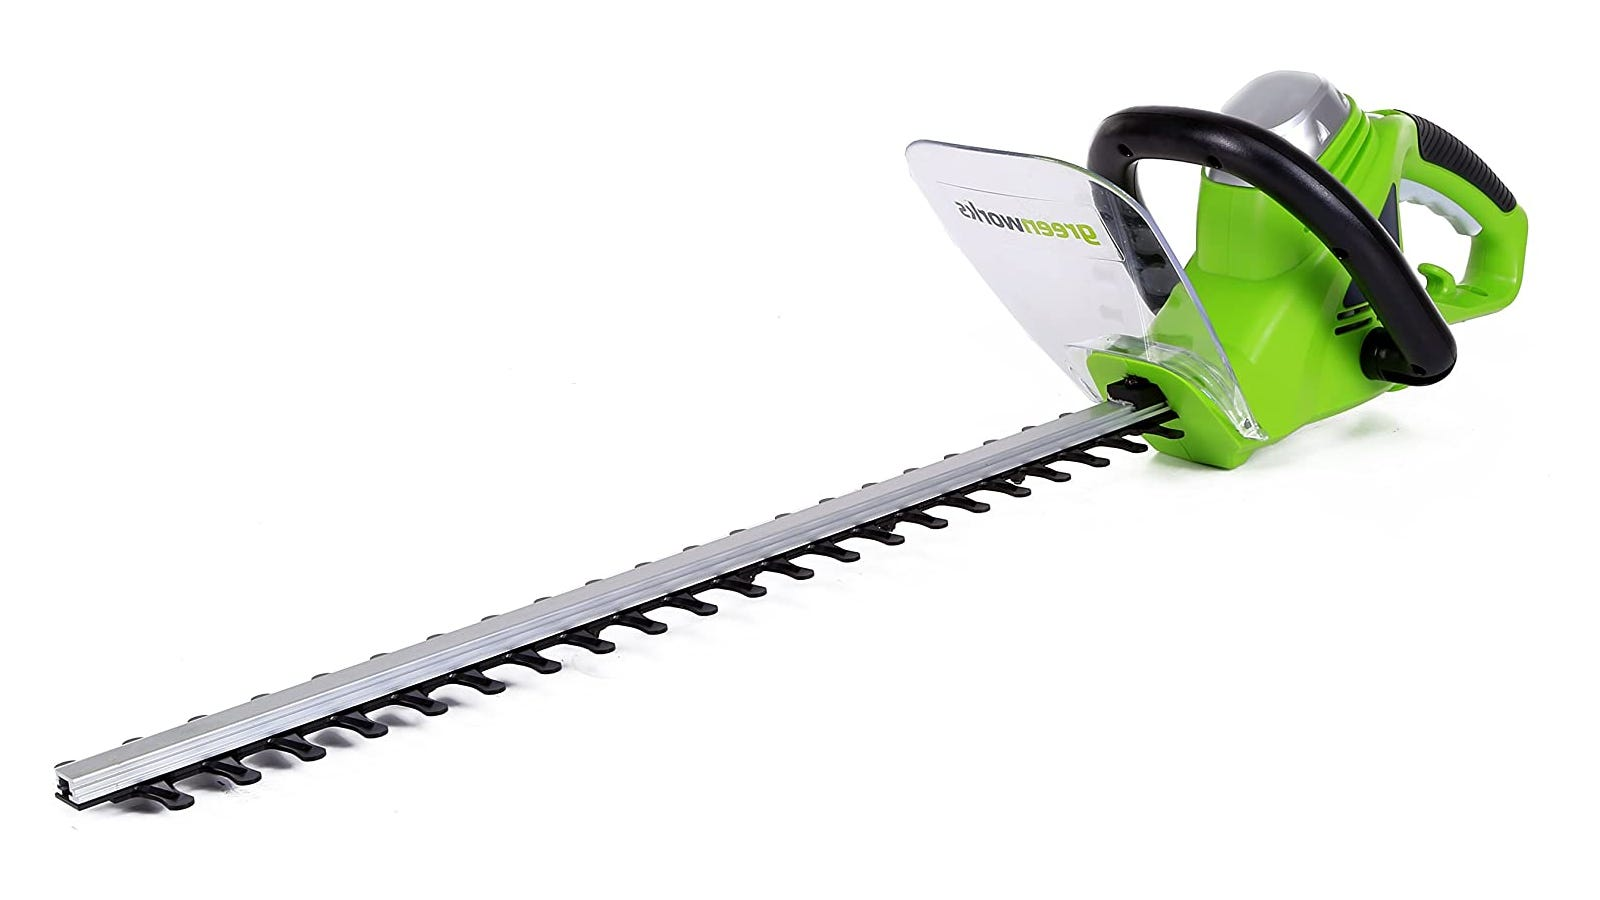 Green 22-Inch Corded Hedge Trimmer with 4-Amp motor and lightweight design